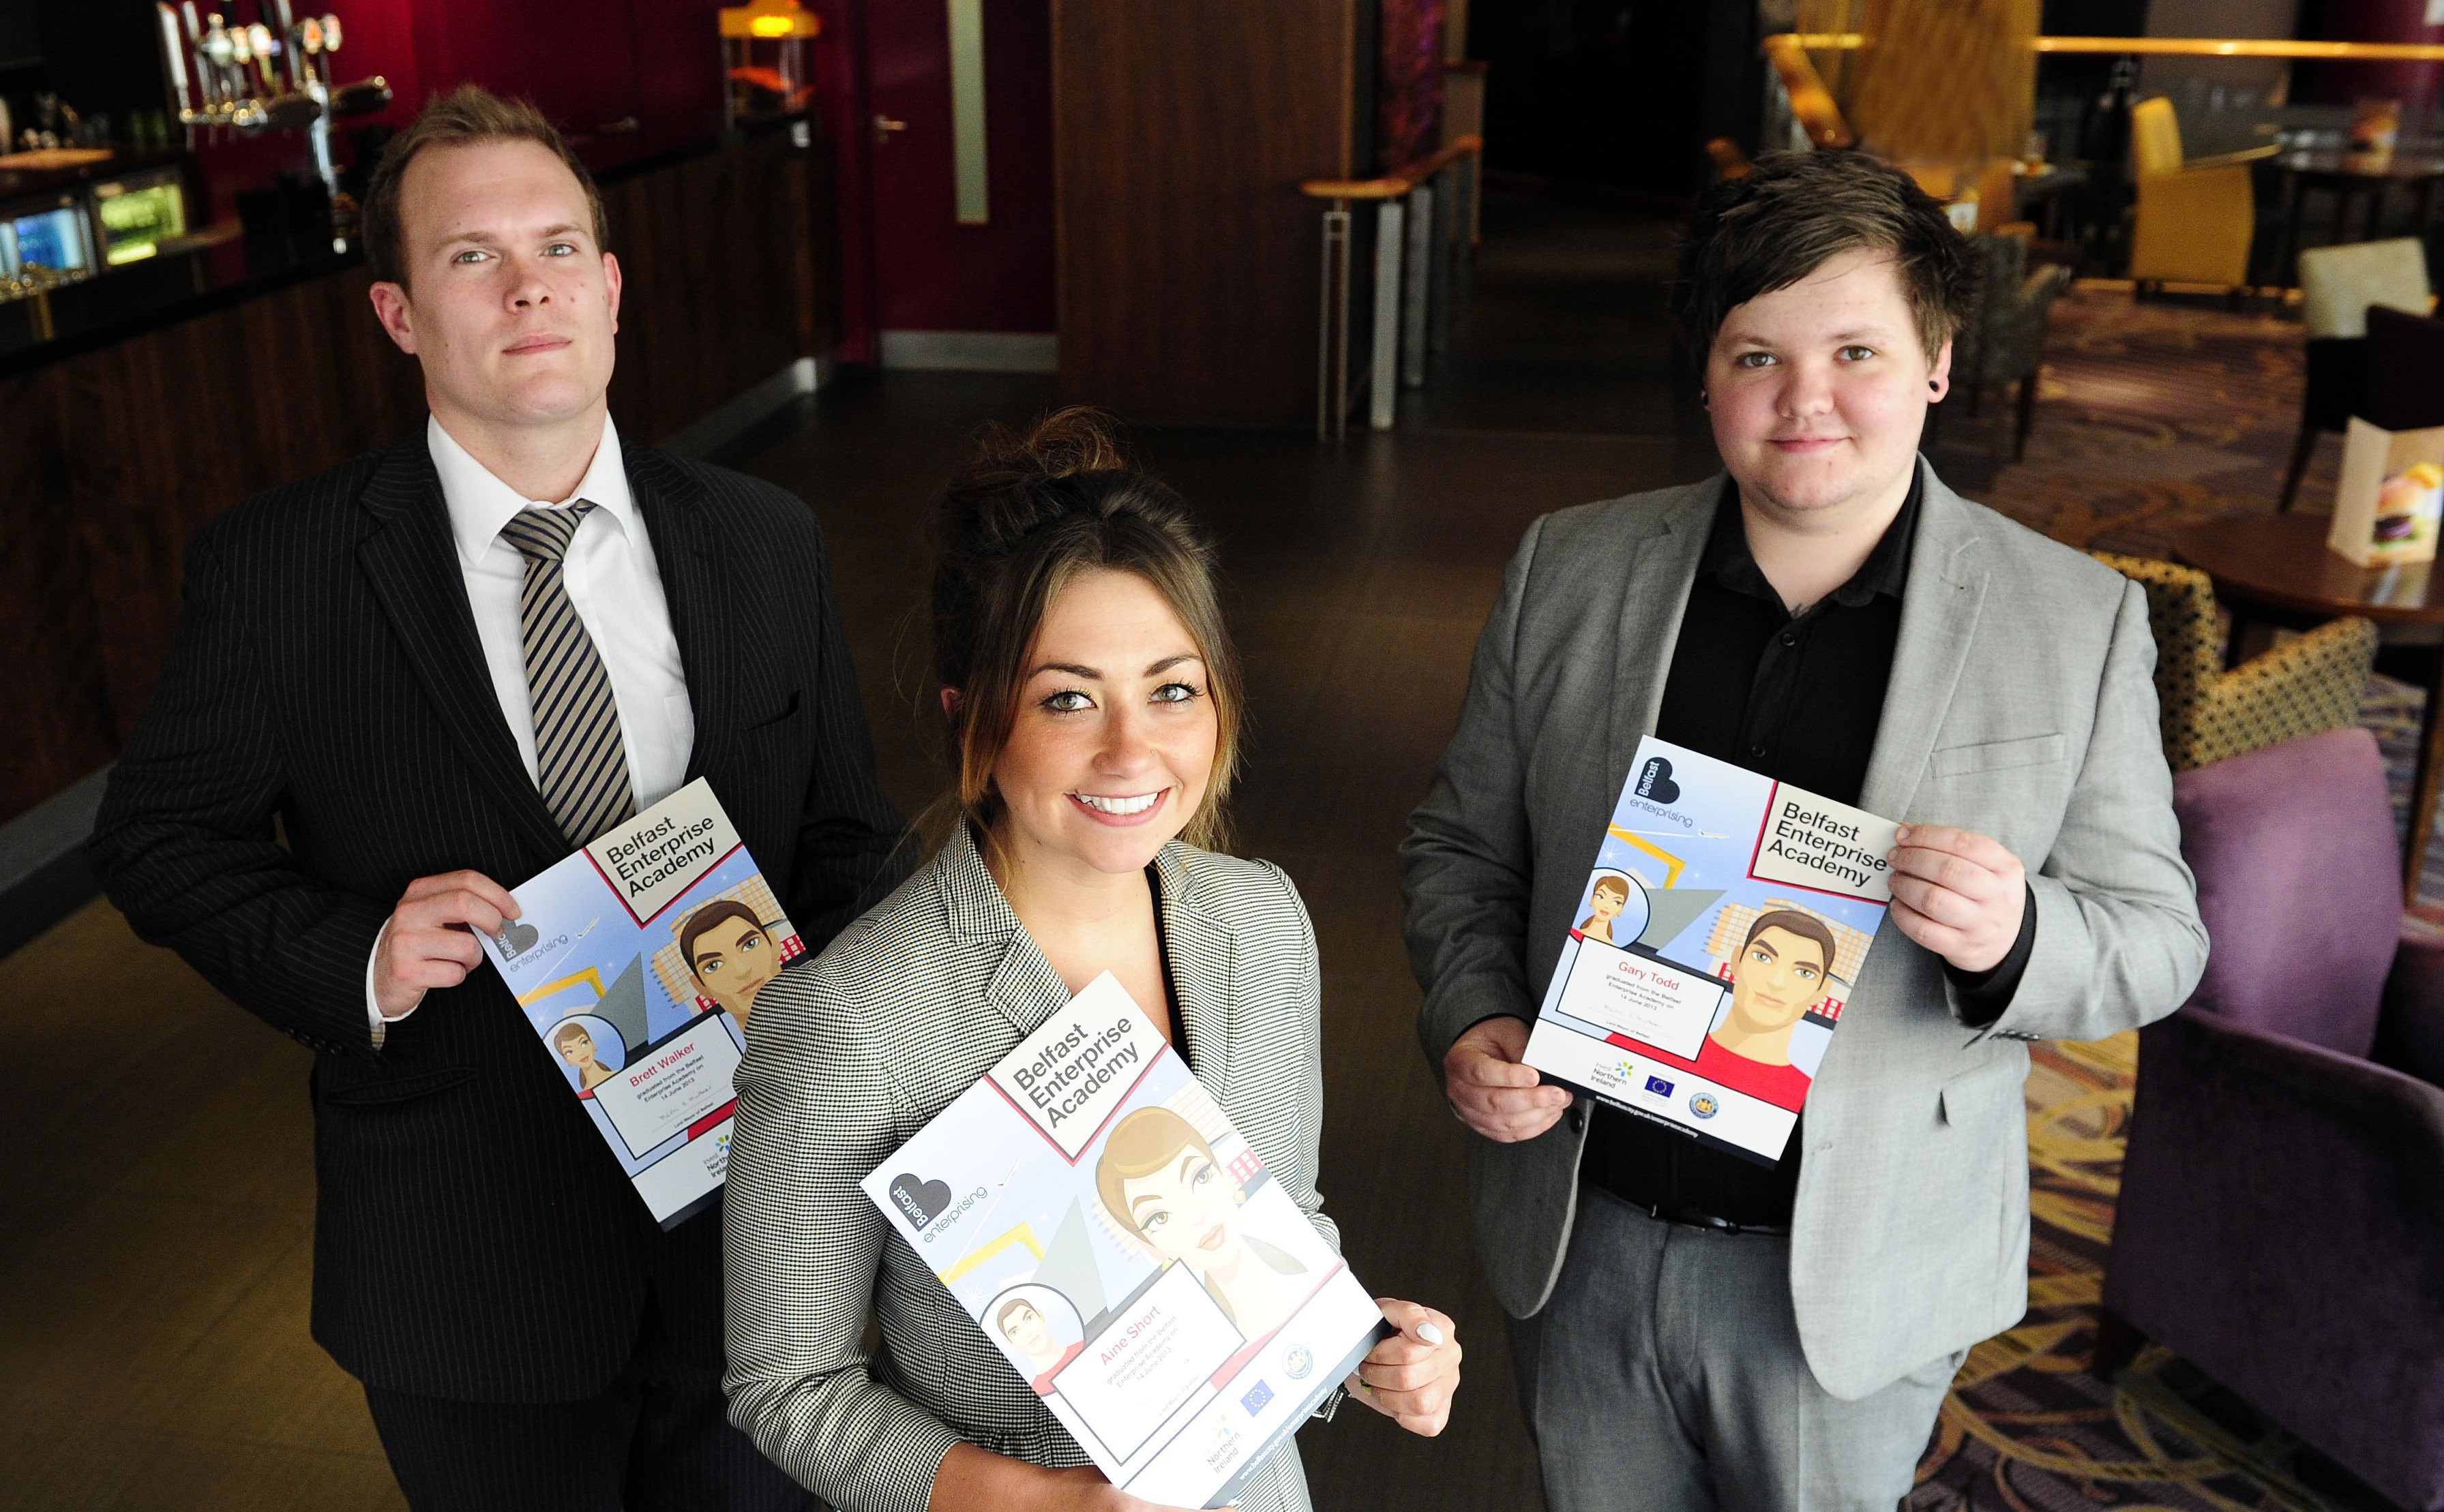 Belfast's future entrepreneurs pitch their ideas to panel of business experts